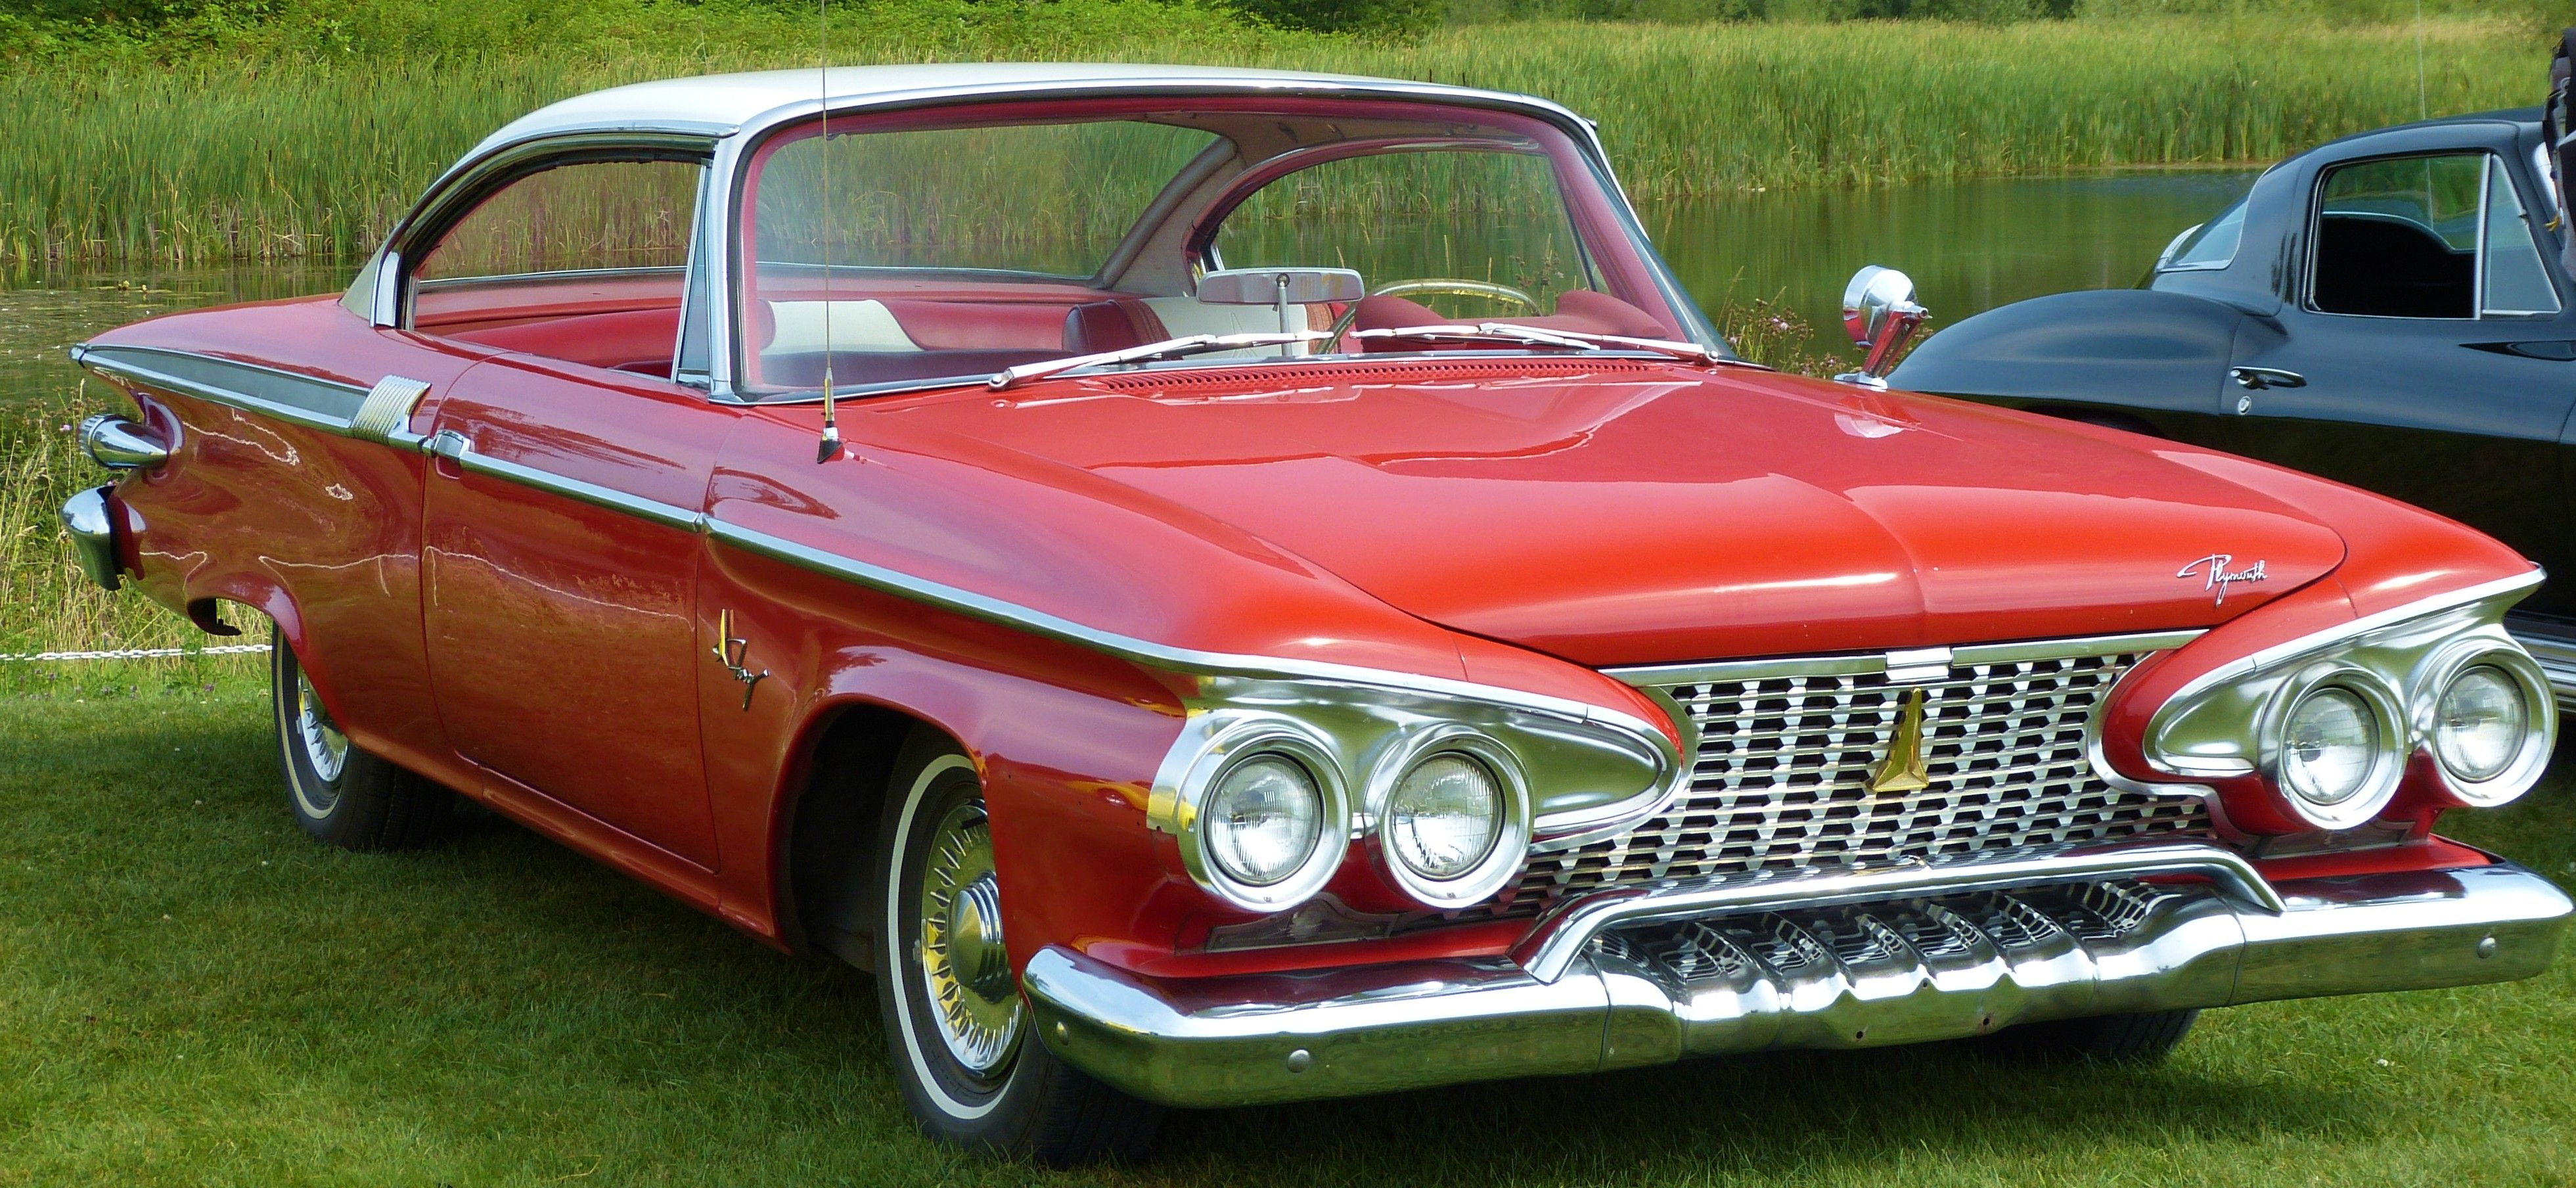 My Pics Of A 1961 Plymouth Fury Bob Is The Oil Guy